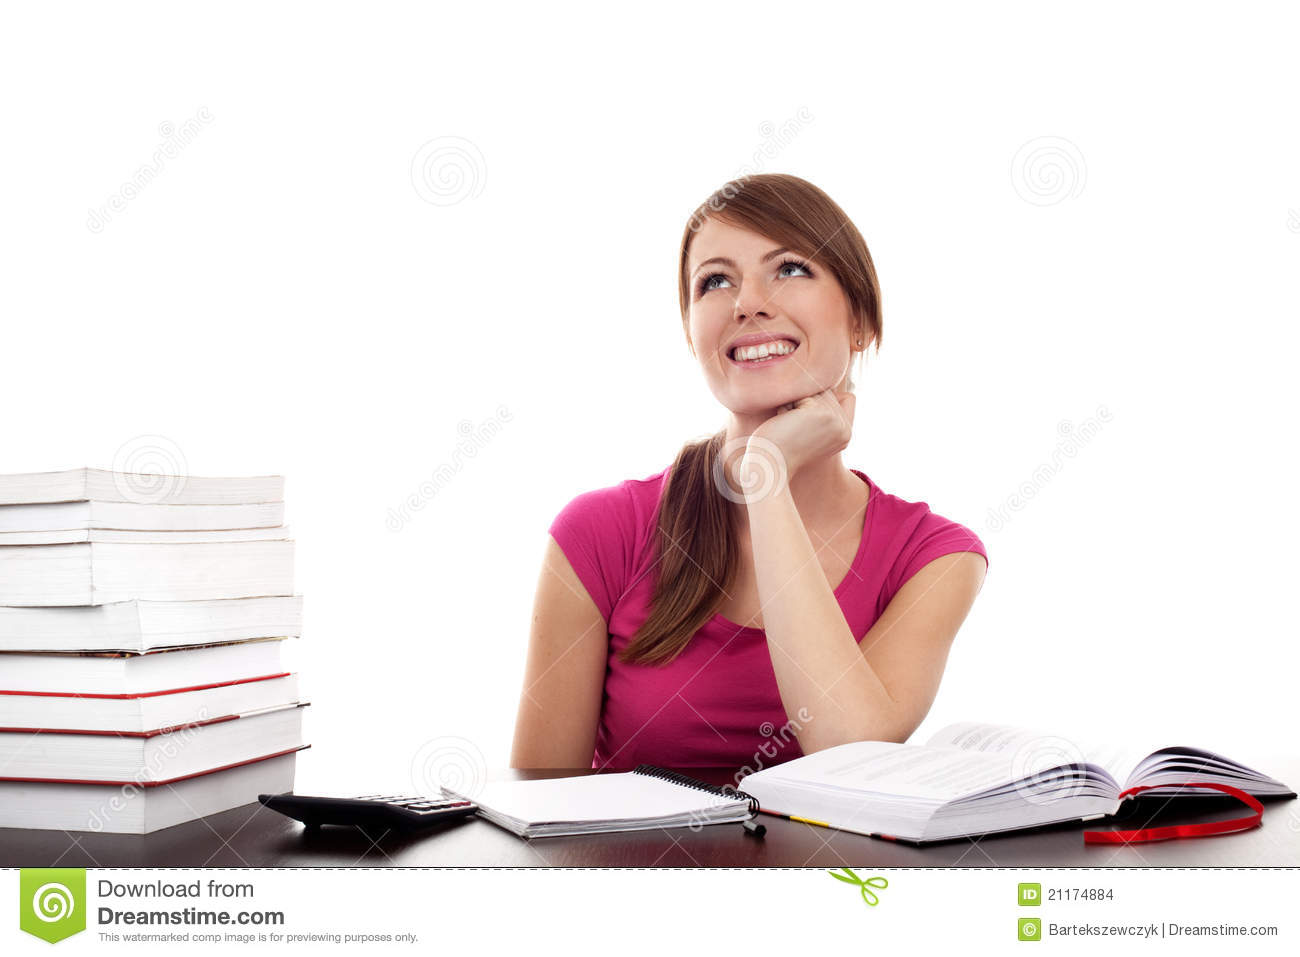 Practical best writing services essaysrescue Solutions – Where To Go